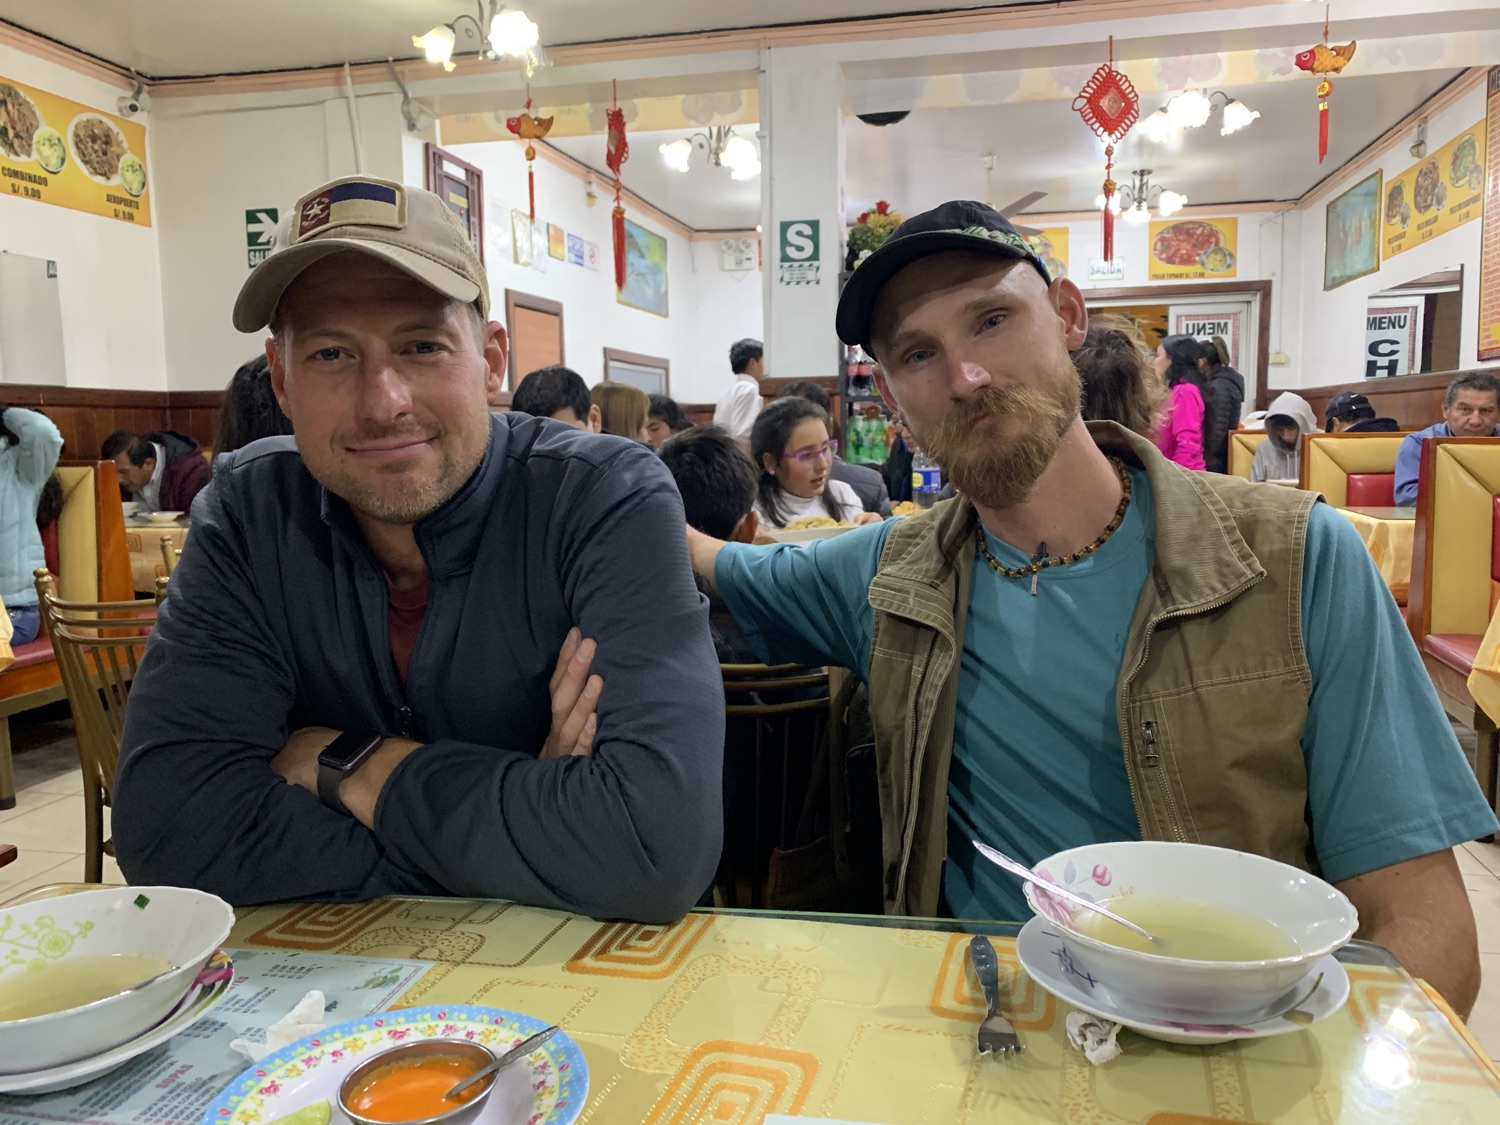 Well, Robert made it to Huaraz before I got around to a final proofread of this post. We grabbed some late night Chifa (i.e. Chinese cuisine with a Peruvian flair).